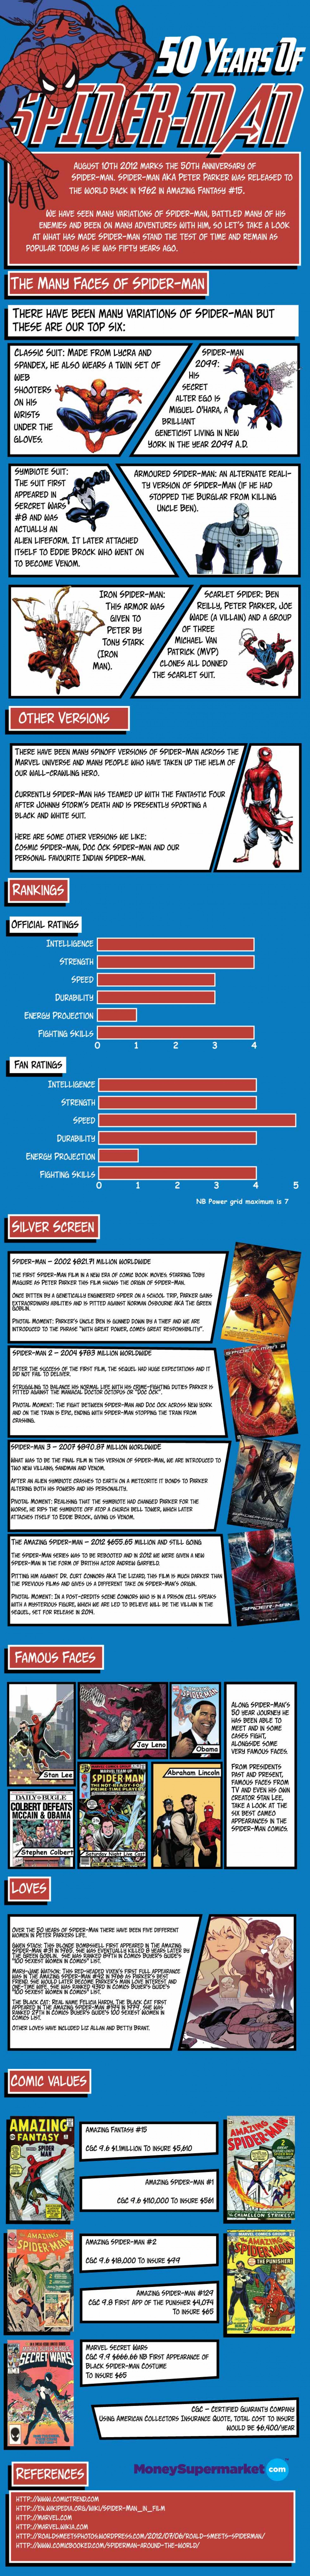 50 Years of Spider-man Infographic